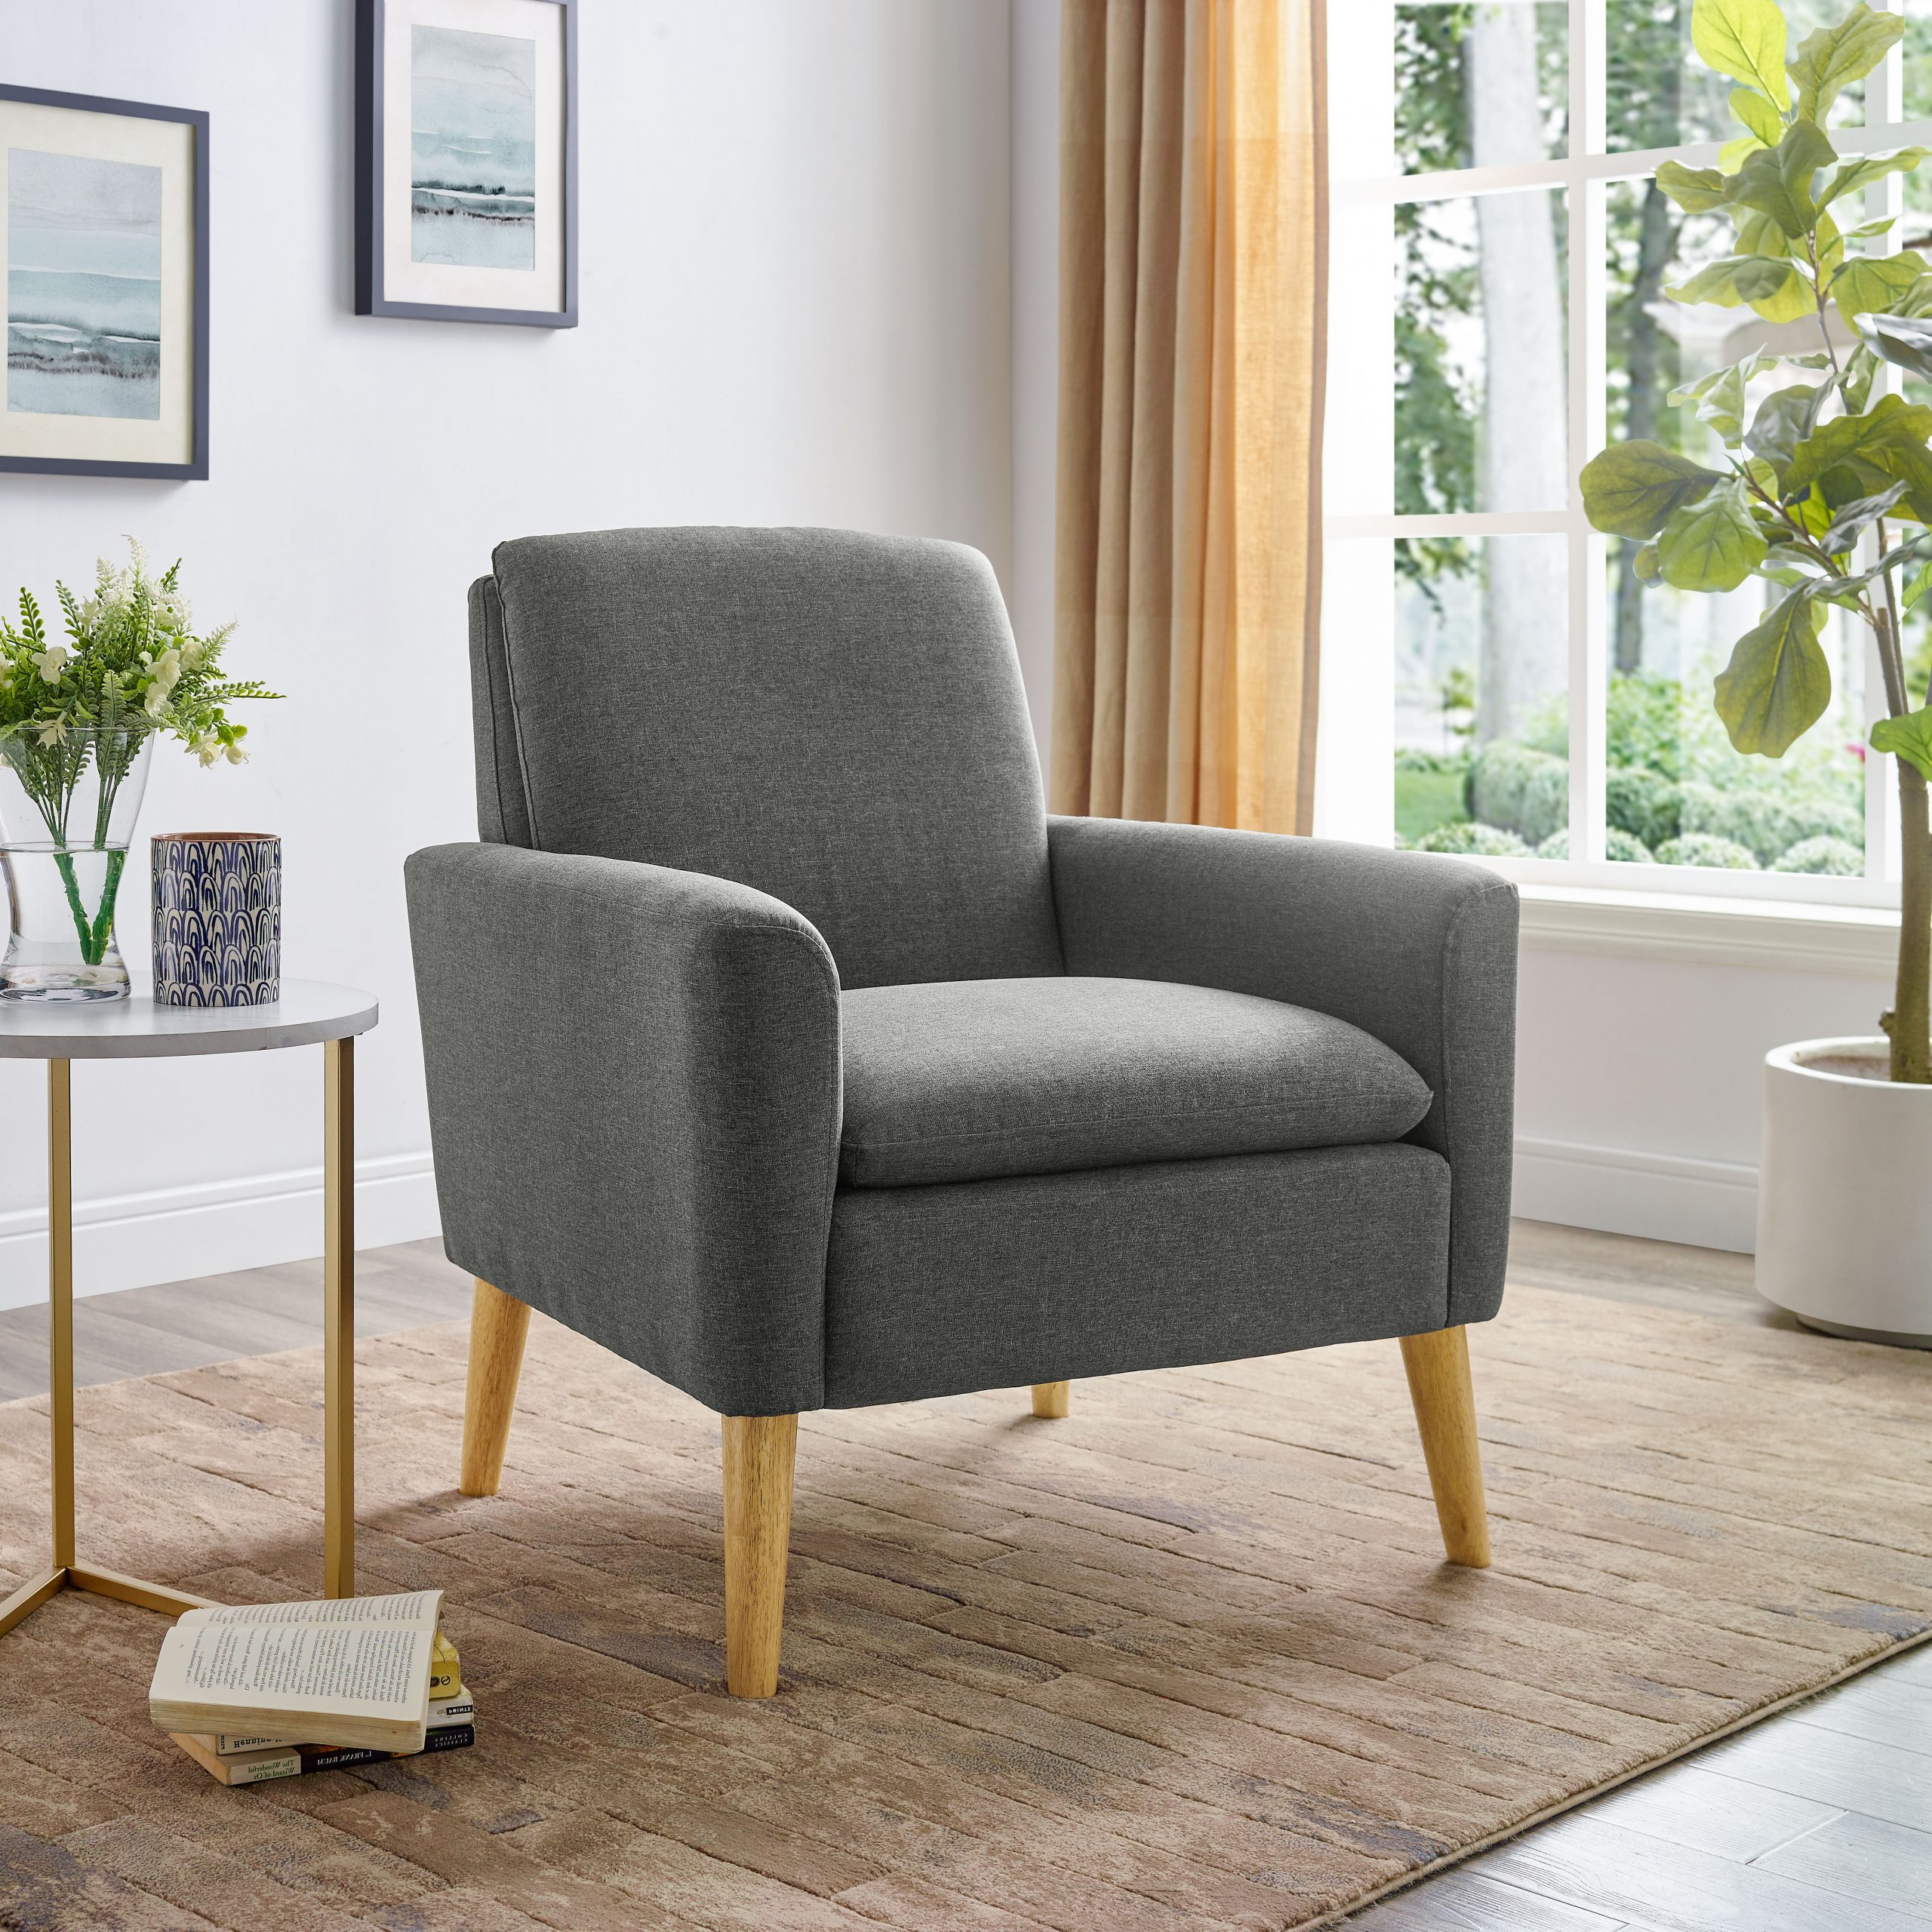 Trendy Harmoni Armchairs In Abordale Arm Chair (View 16 of 20)